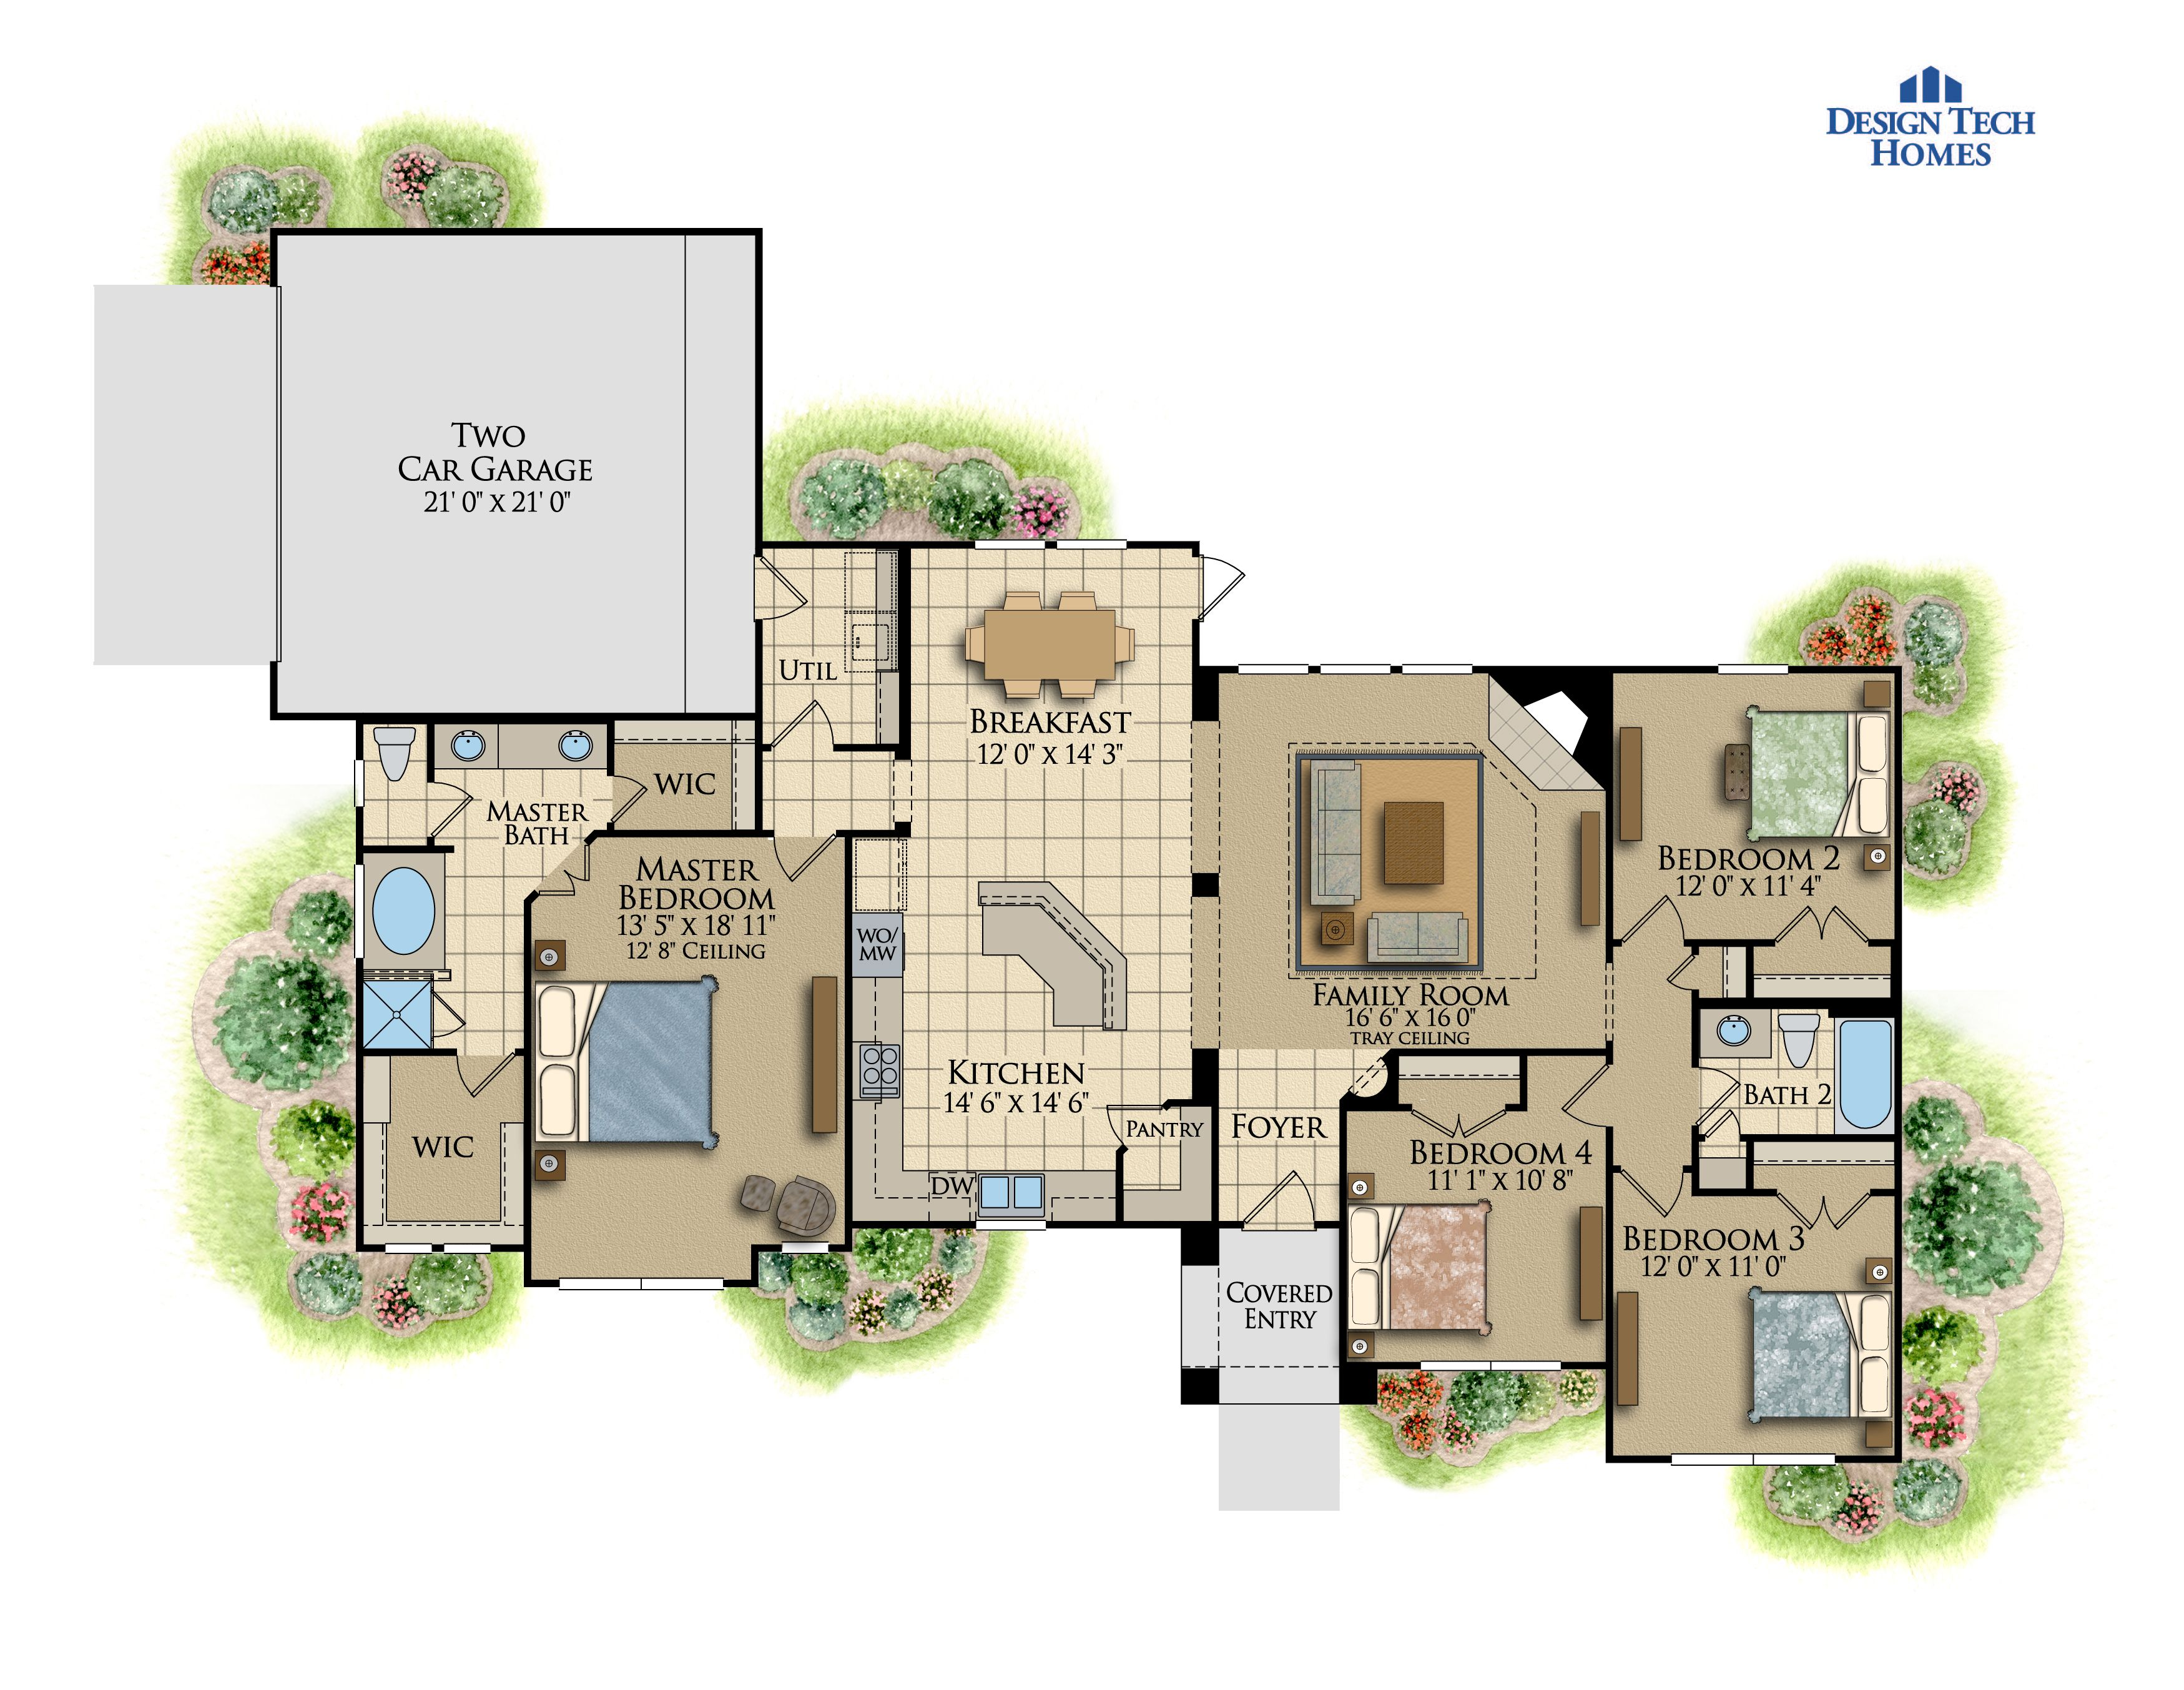 1,863 Sq Ft House Plan - 4 bed 2 Bath, 1 Story - The Valencia ...